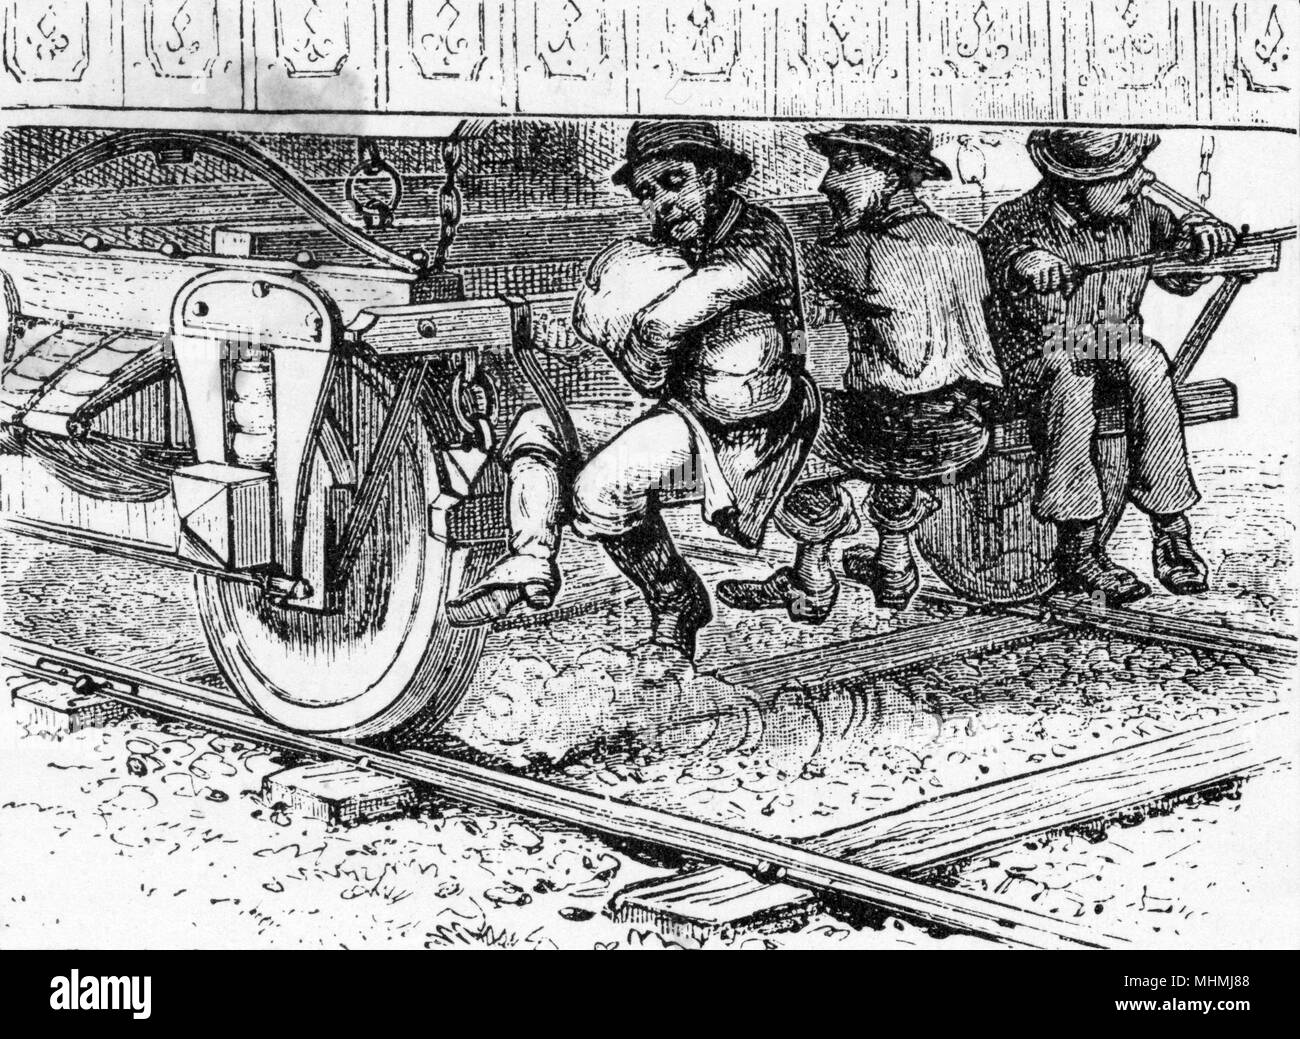 American Hoboes 'Riding the Rods'.       Date: 1882 - Stock Image